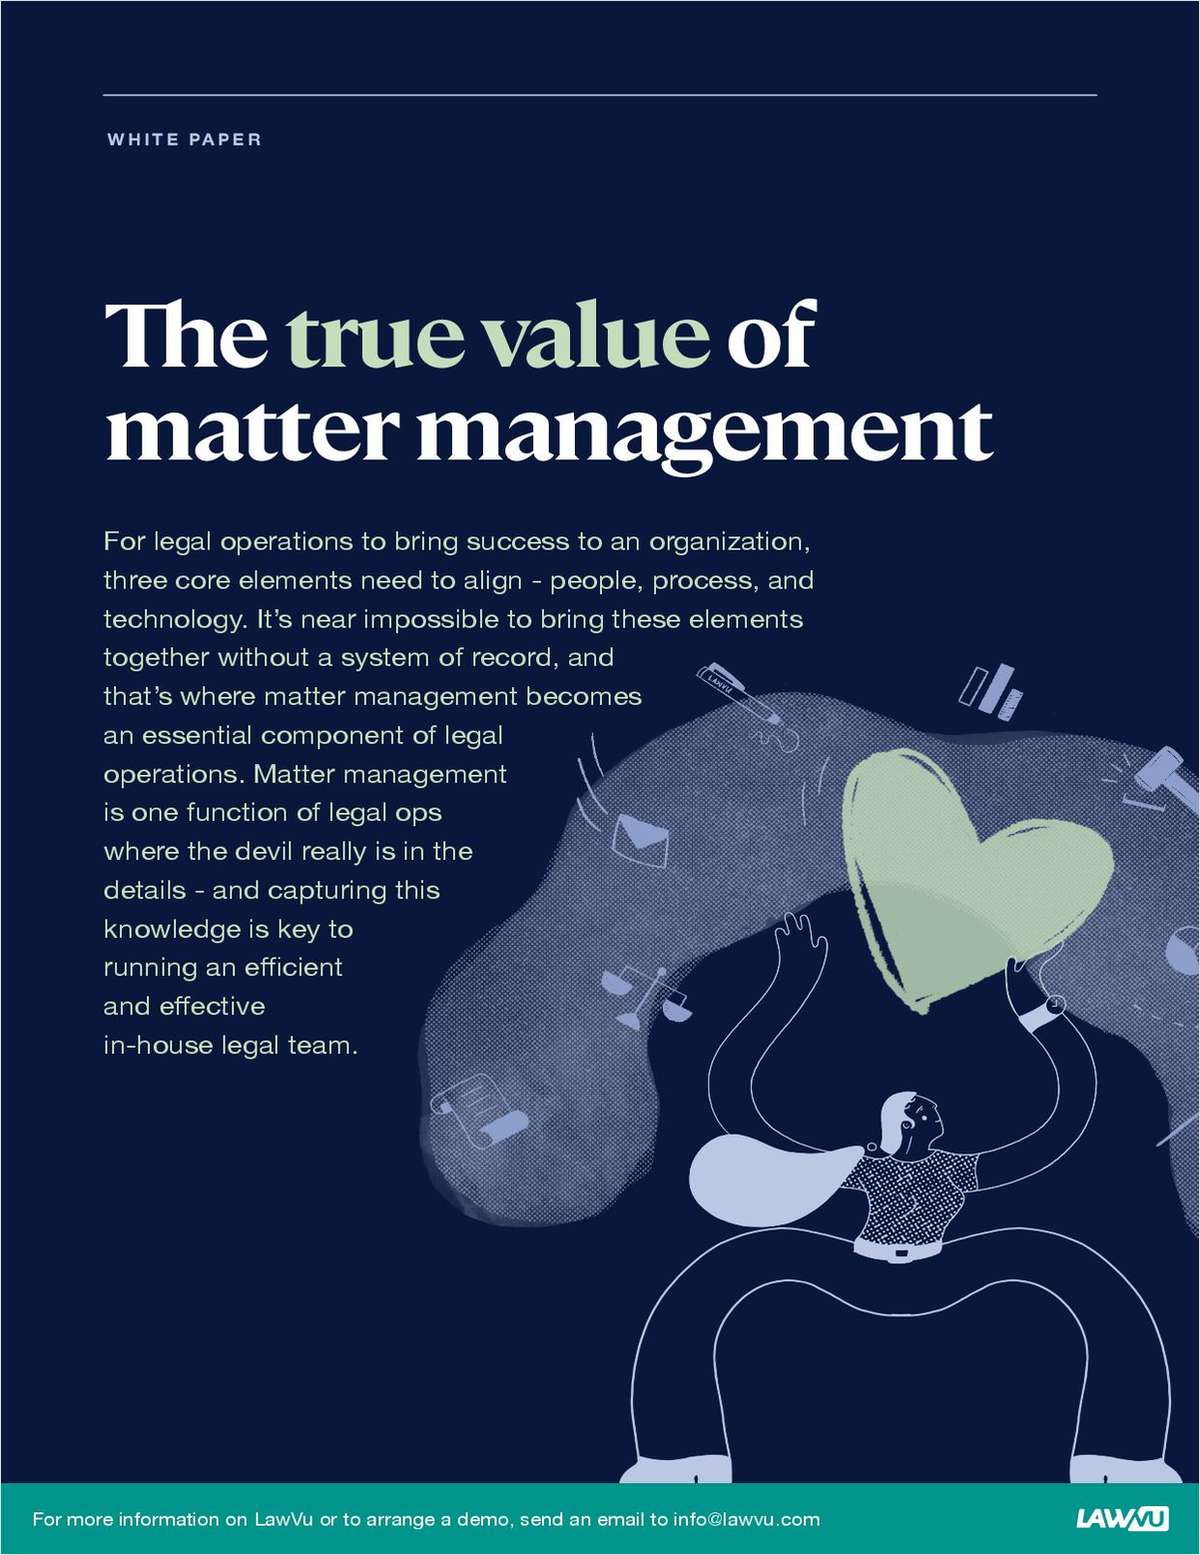 Life as an in-house legal team is busy. It's essential for General Counsel to have the complete picture of what's happening and what's coming. Matter management provides that solution, but the devil really is in the details. This white paper outlines how to get started with effective matter management and the key attributes of a comprehensive solution.